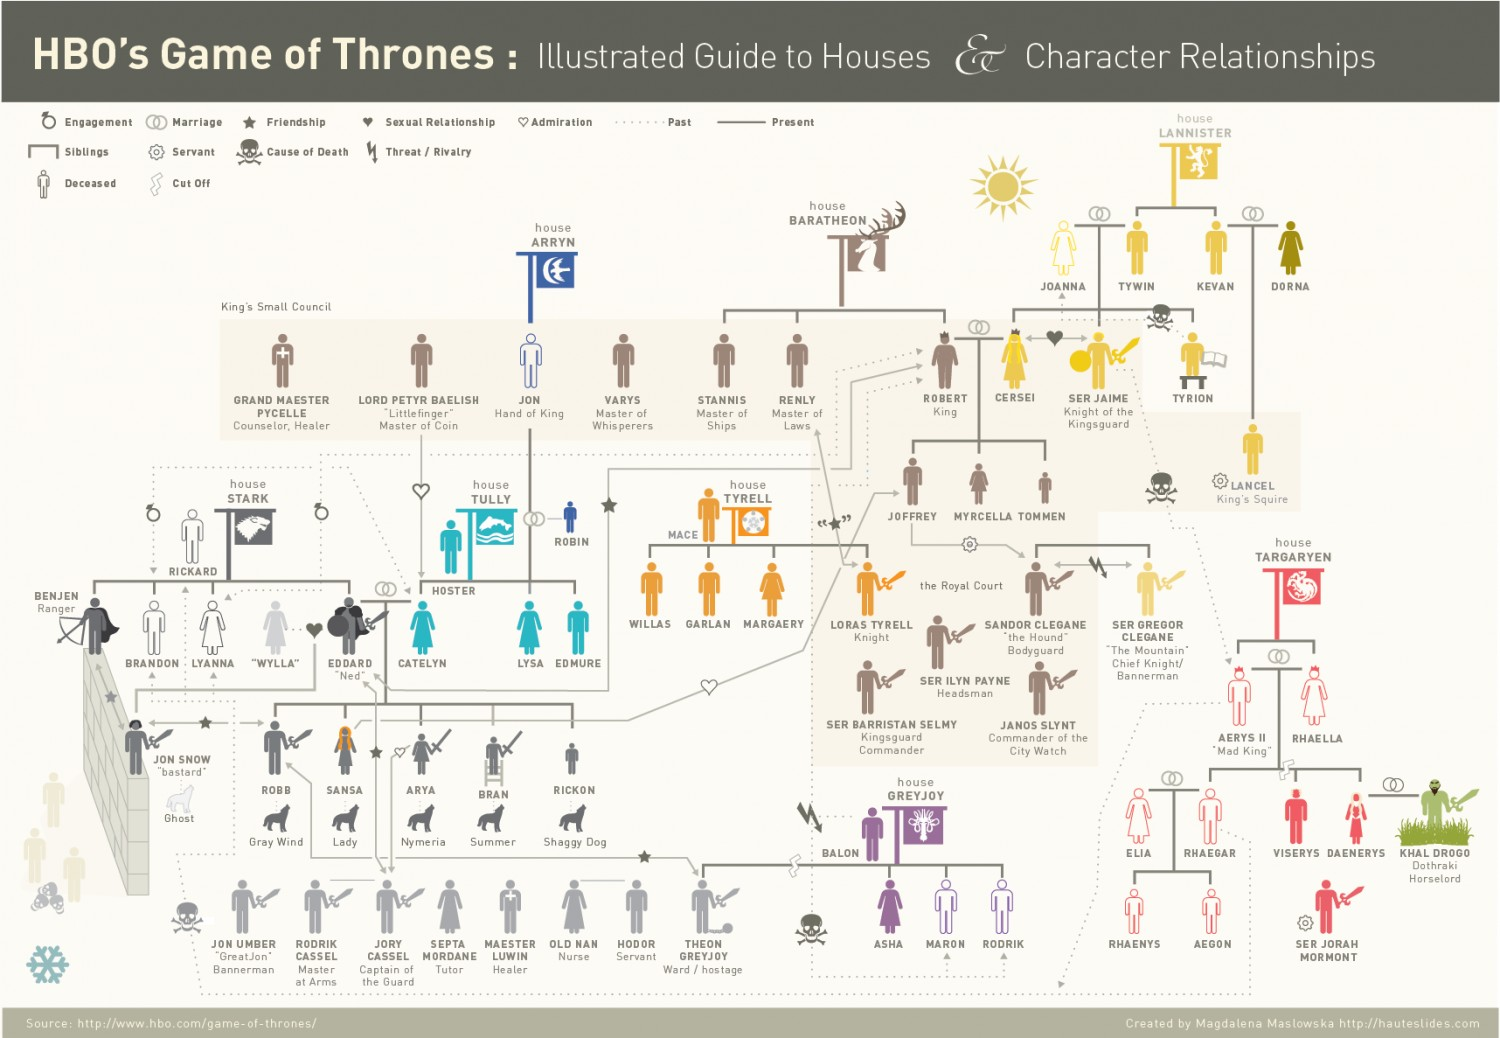 theKONGBLOG™: HBO's Game Of Thrones: Family Tree